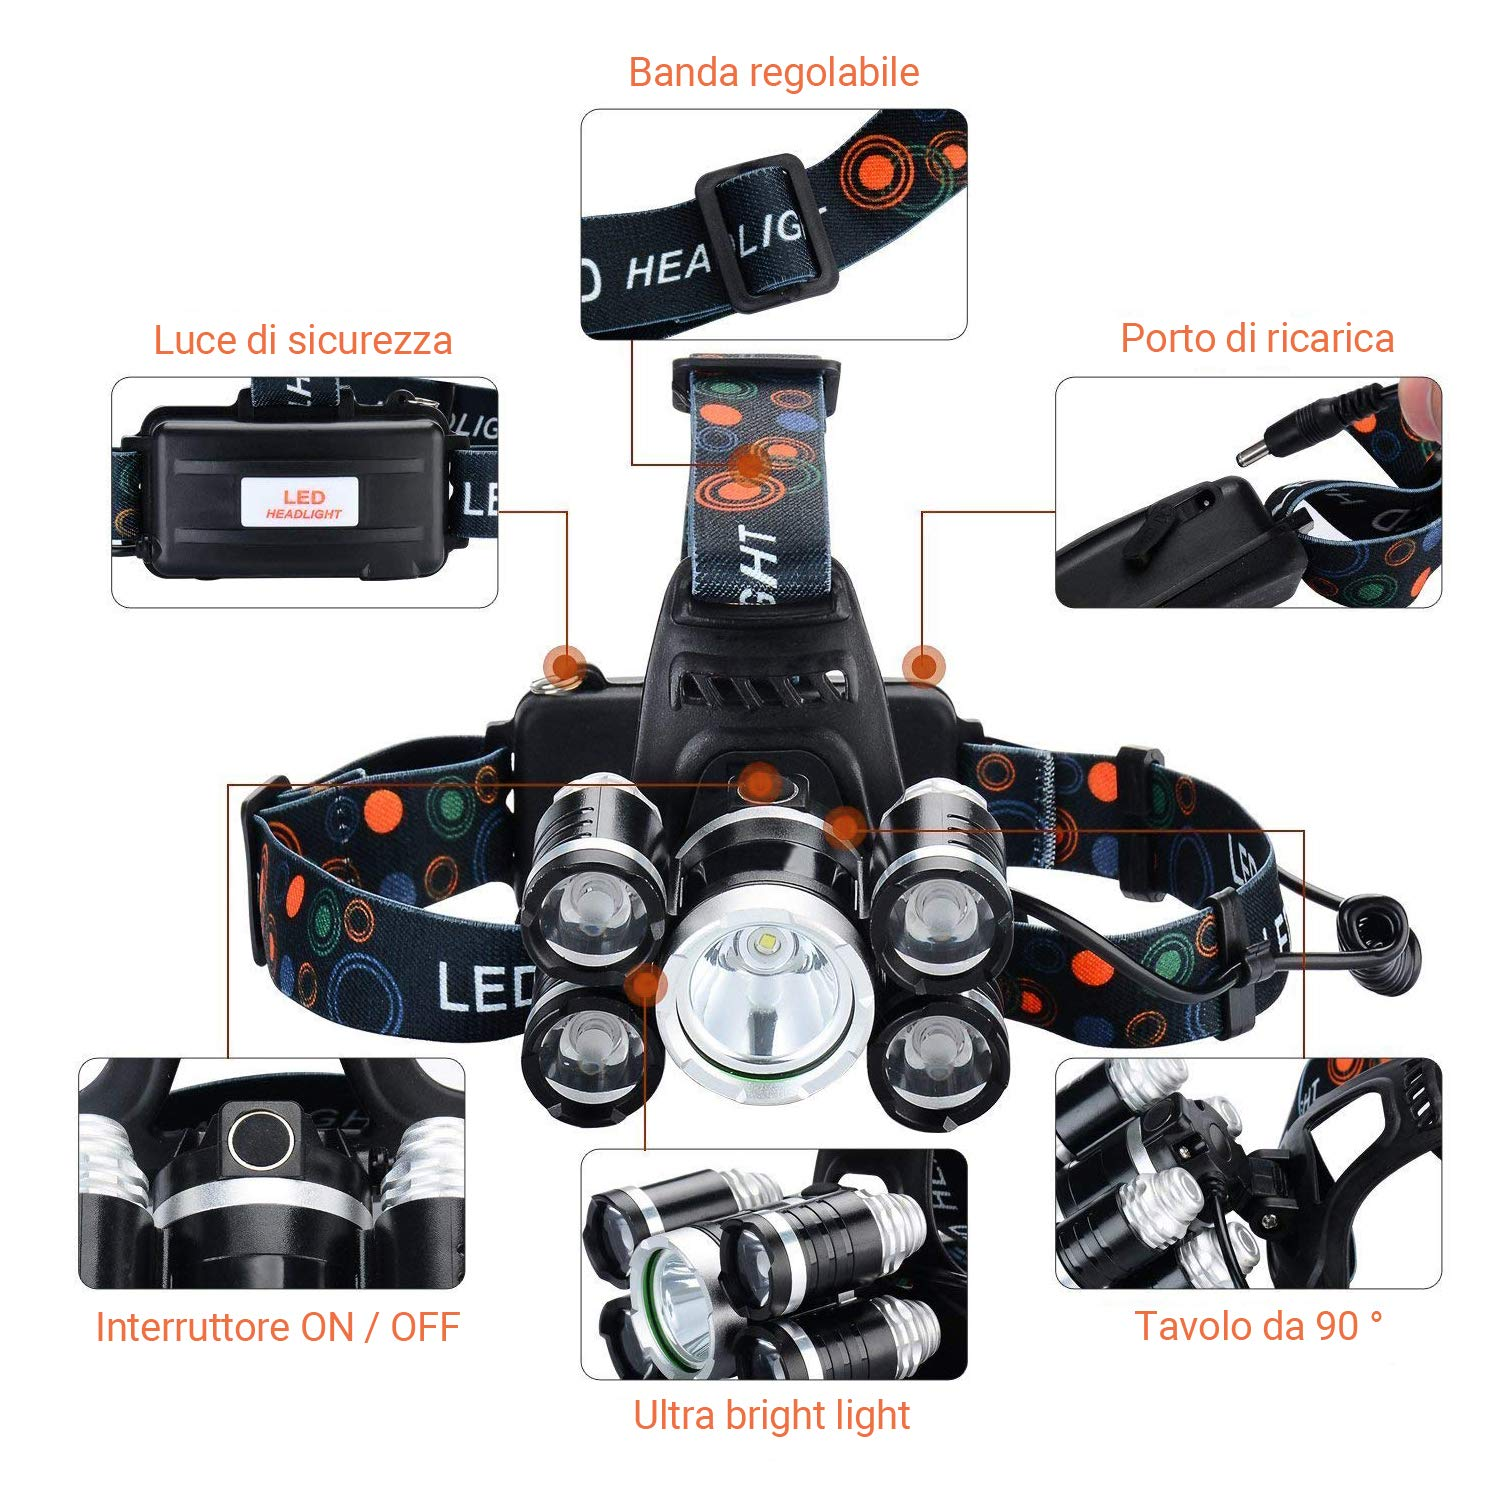 5LED T6 High Power Headlight - Best for camping and fishing